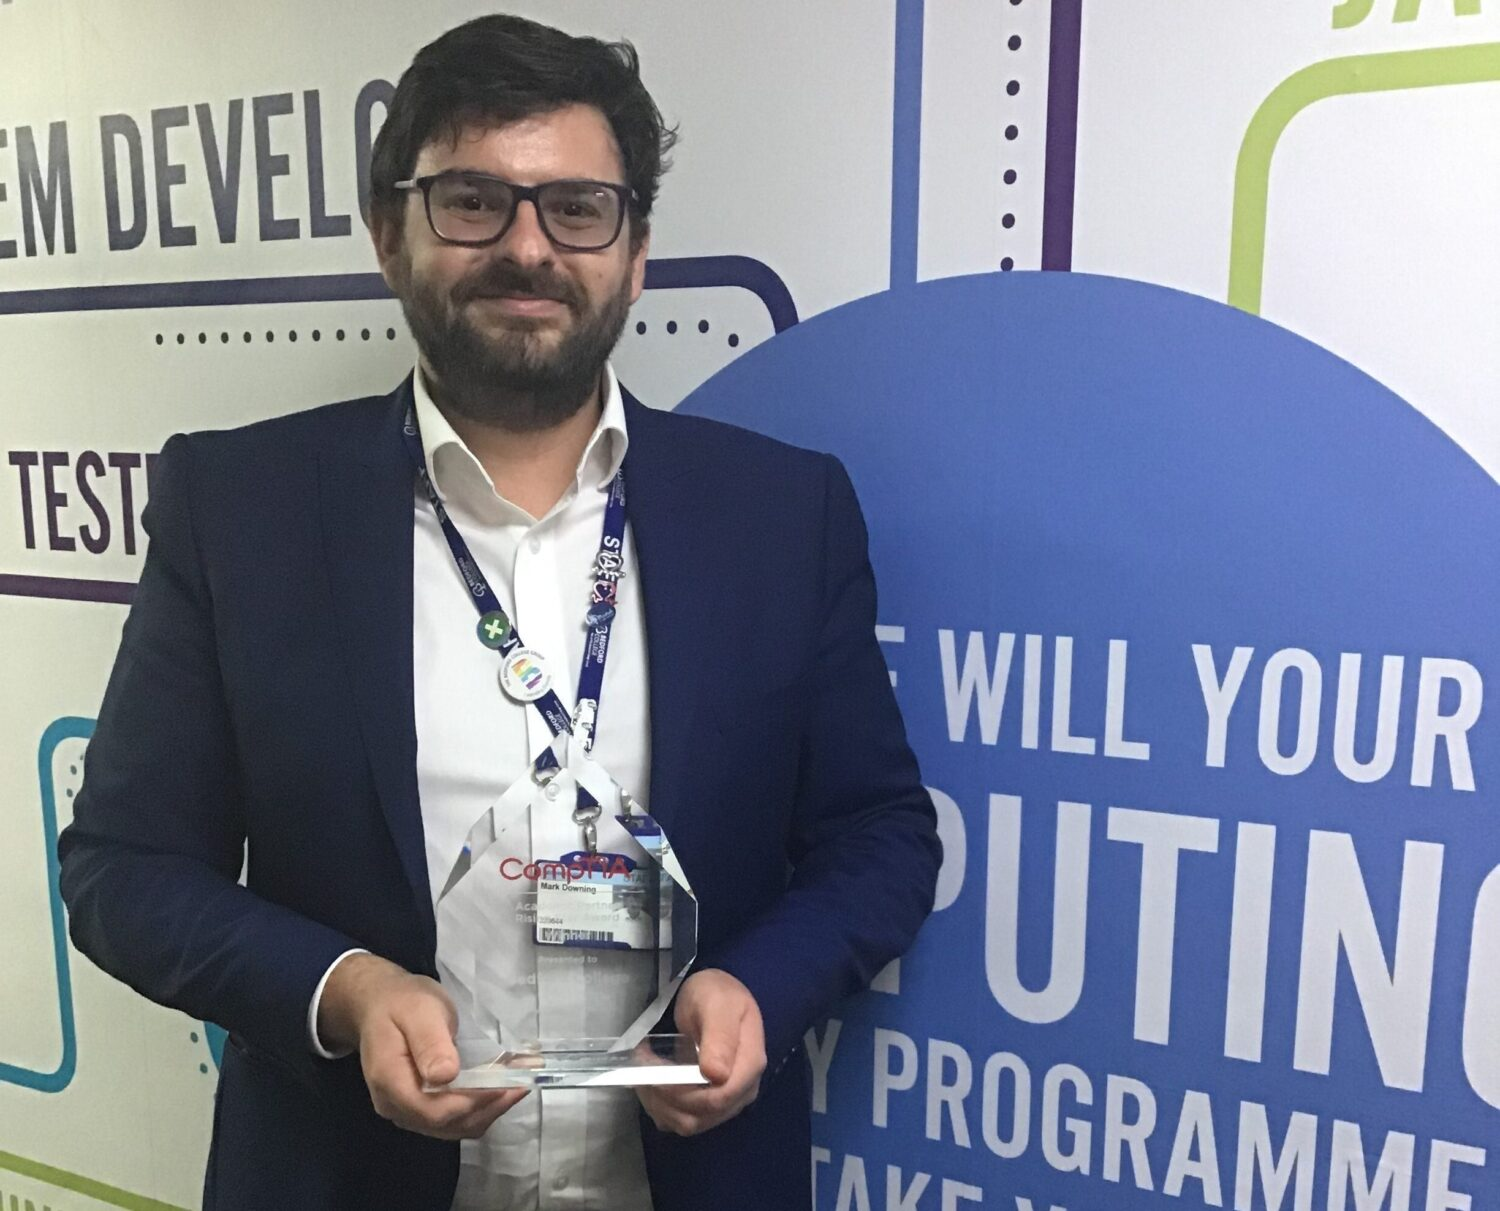 Bedford College Computing tutor Mark Downing with award